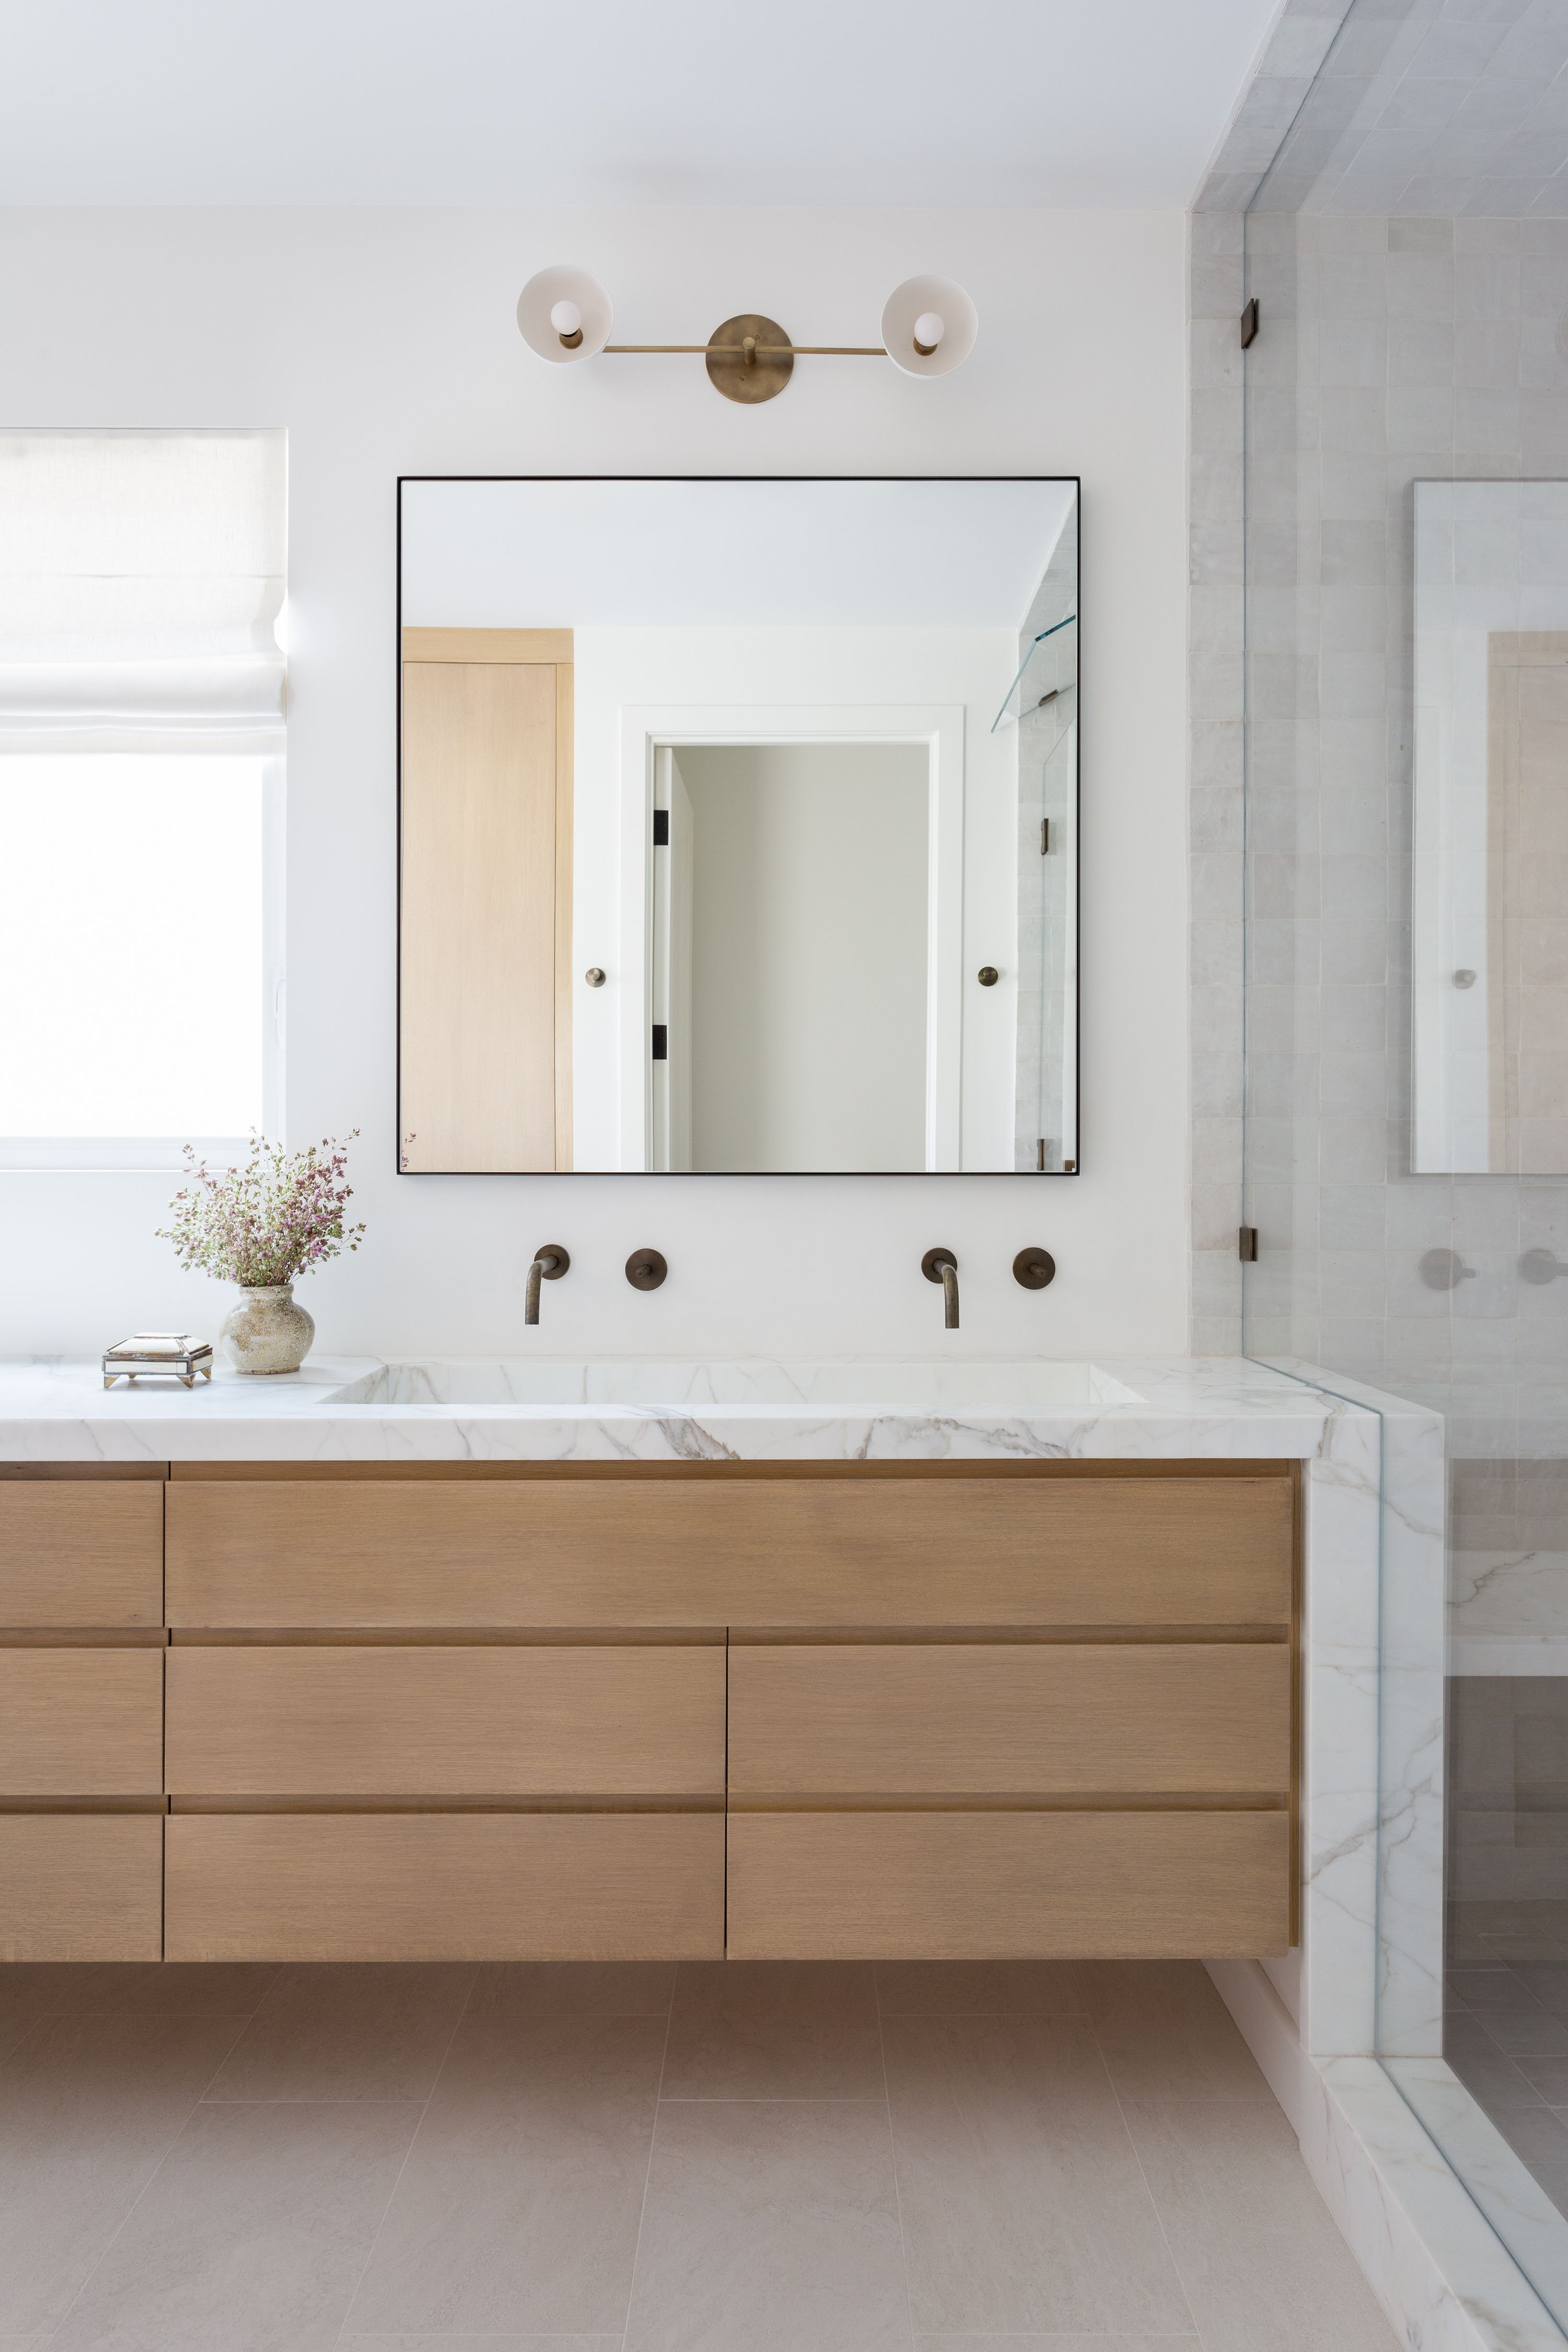 20 Contemporary Bathroom Ideas That Will Make Your Space Feel Brand New